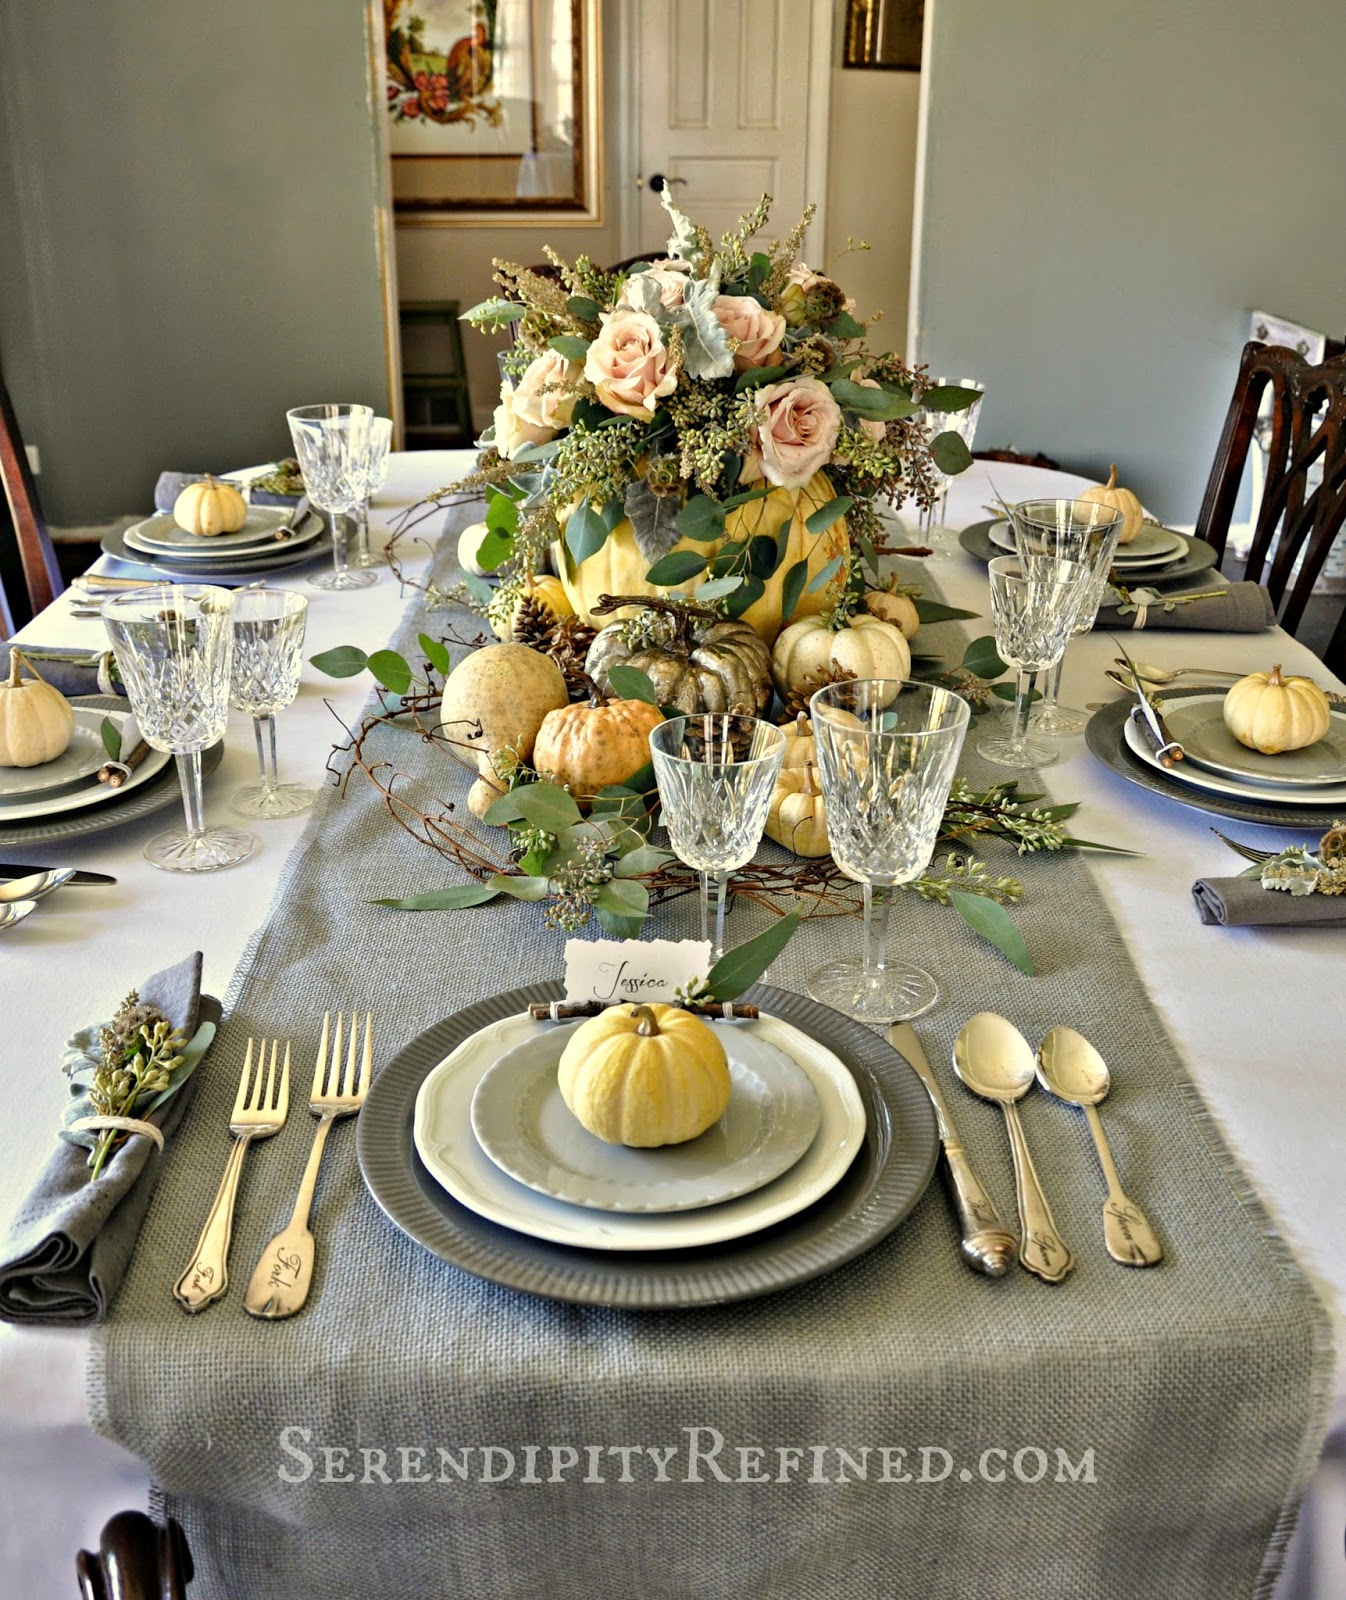 Serendipity Refined Blog Rustic Gray and White and Pink